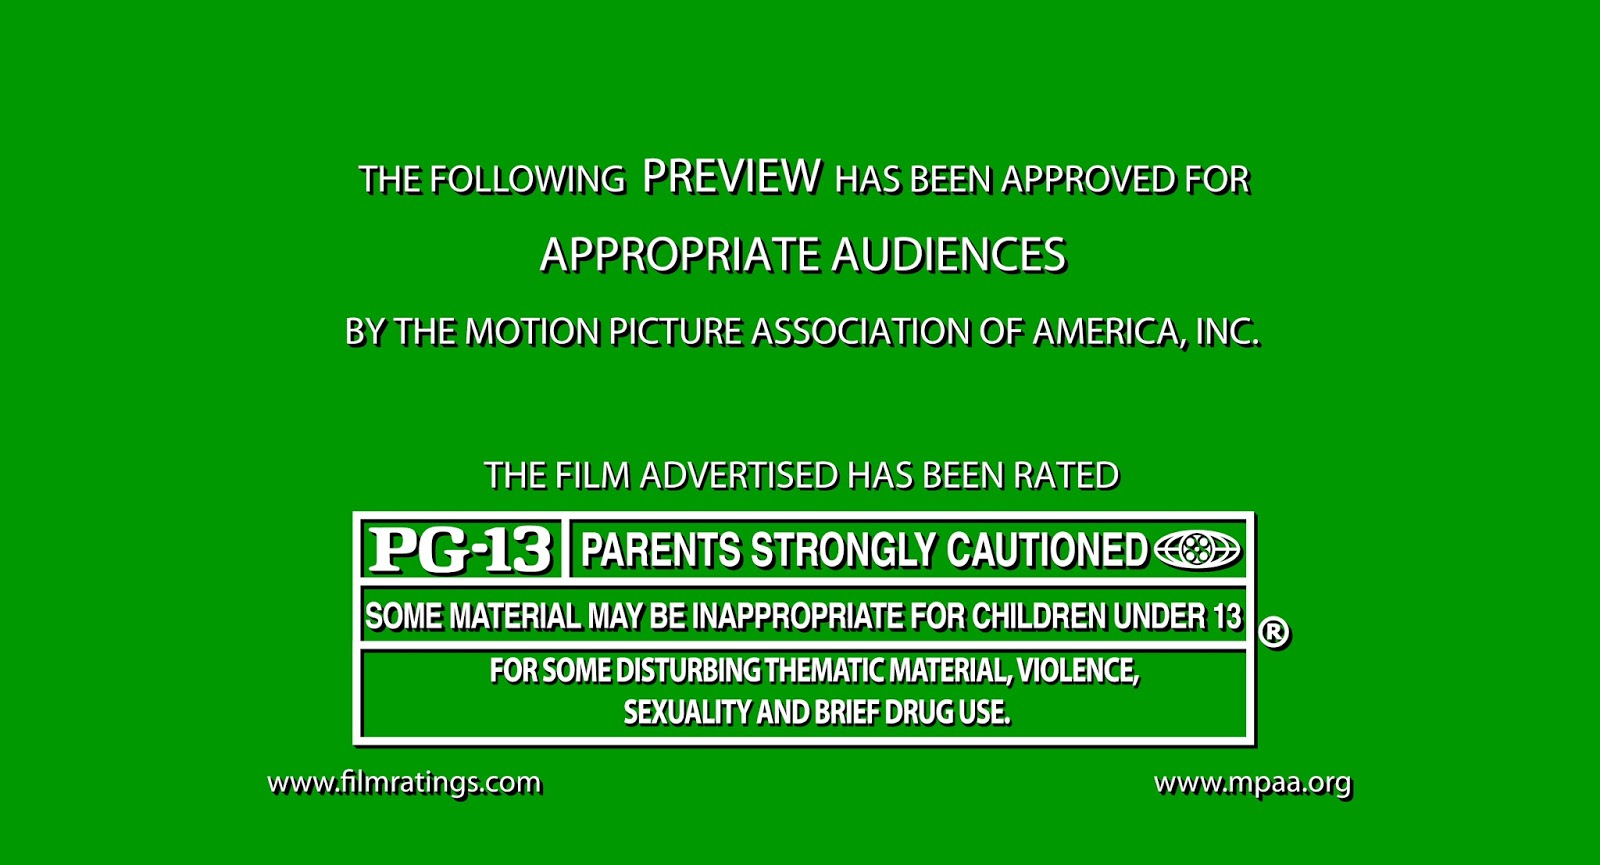 What is movie pg 13